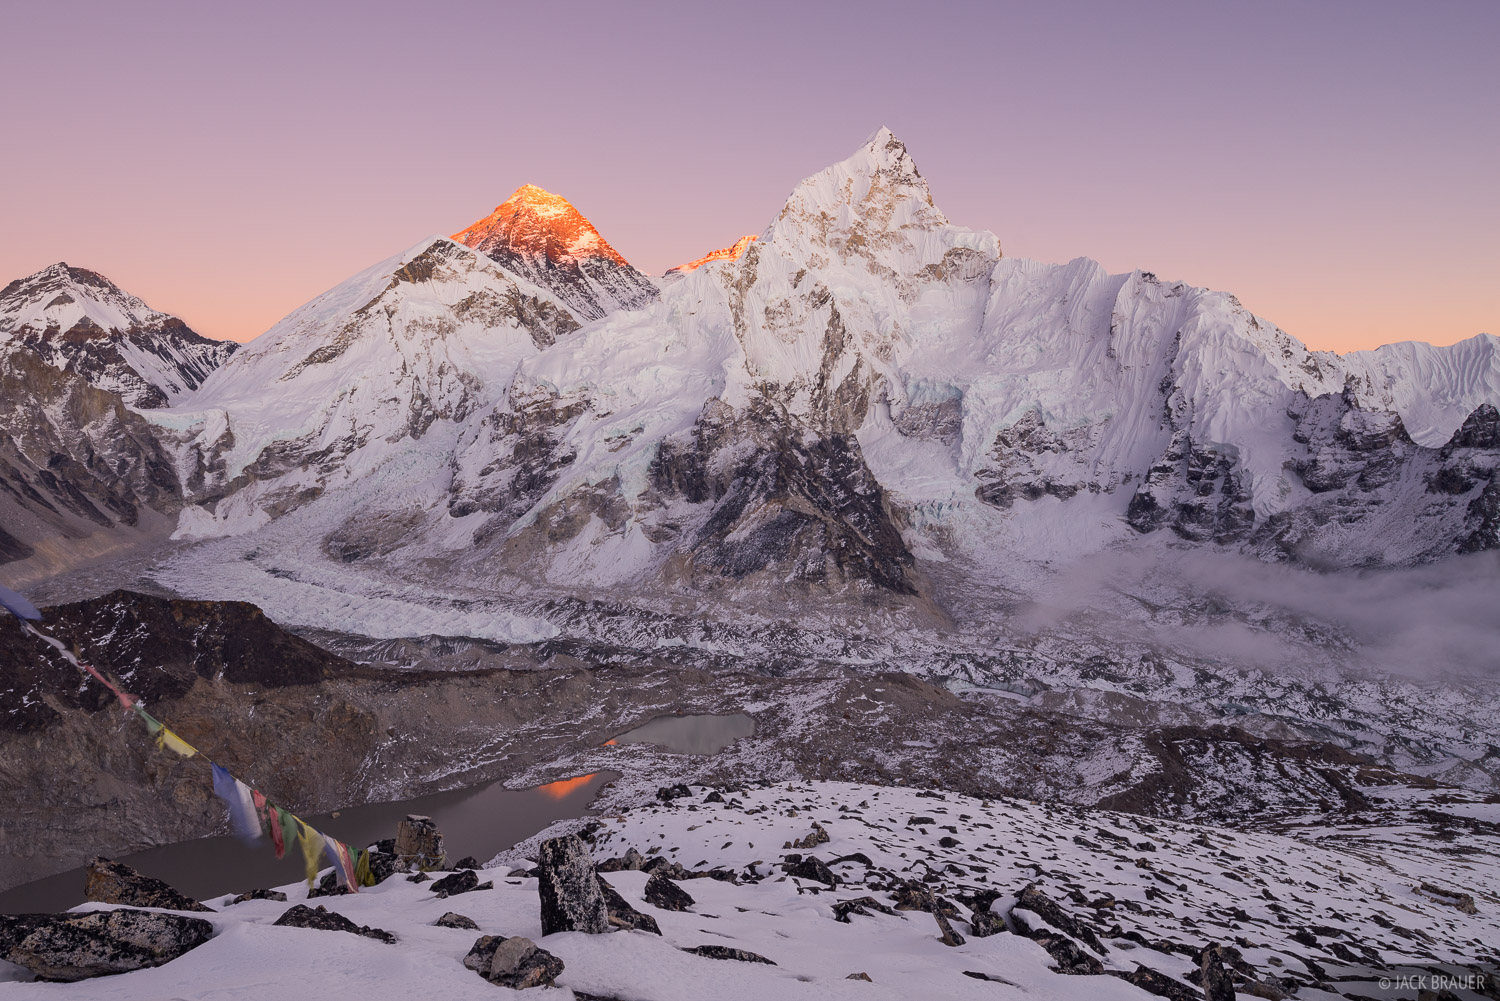 Himalaya,Kala Patthar,Khumbu,Mt. Everest,Nepal,Nuptse, photo